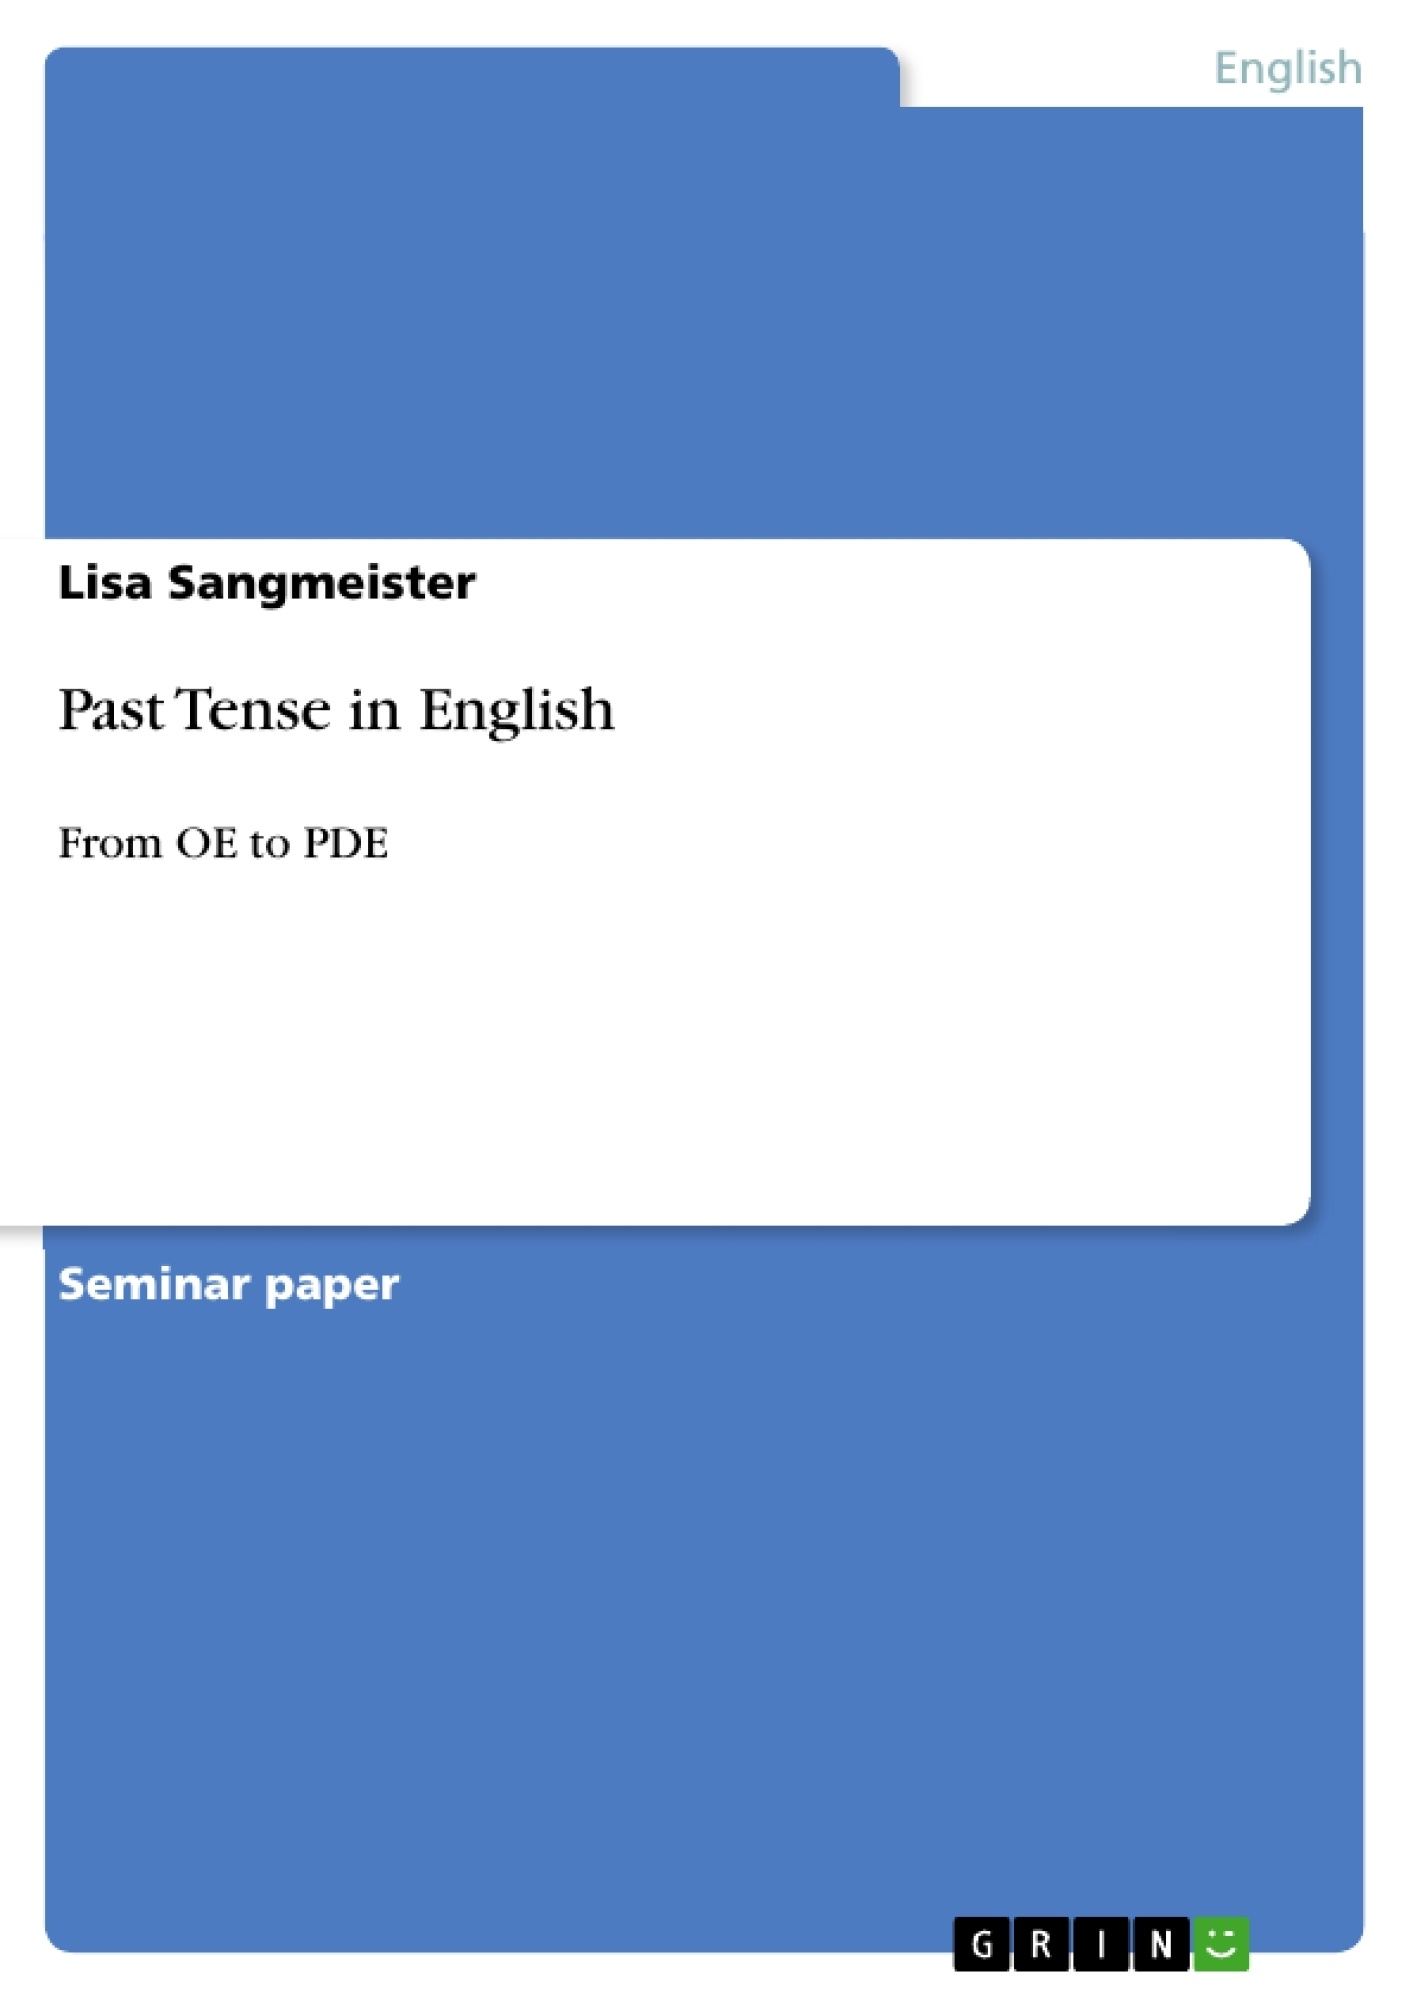 thesis of english syntax Learn still, english grammar, despite its importance in language learning, seems to be associated with boring rules and red ink by many this thesis addresses some questions of grammar in the efl classroom the aim is to examine grammar tasks in efl textbooks in the introductory chapter reasons for examining english.